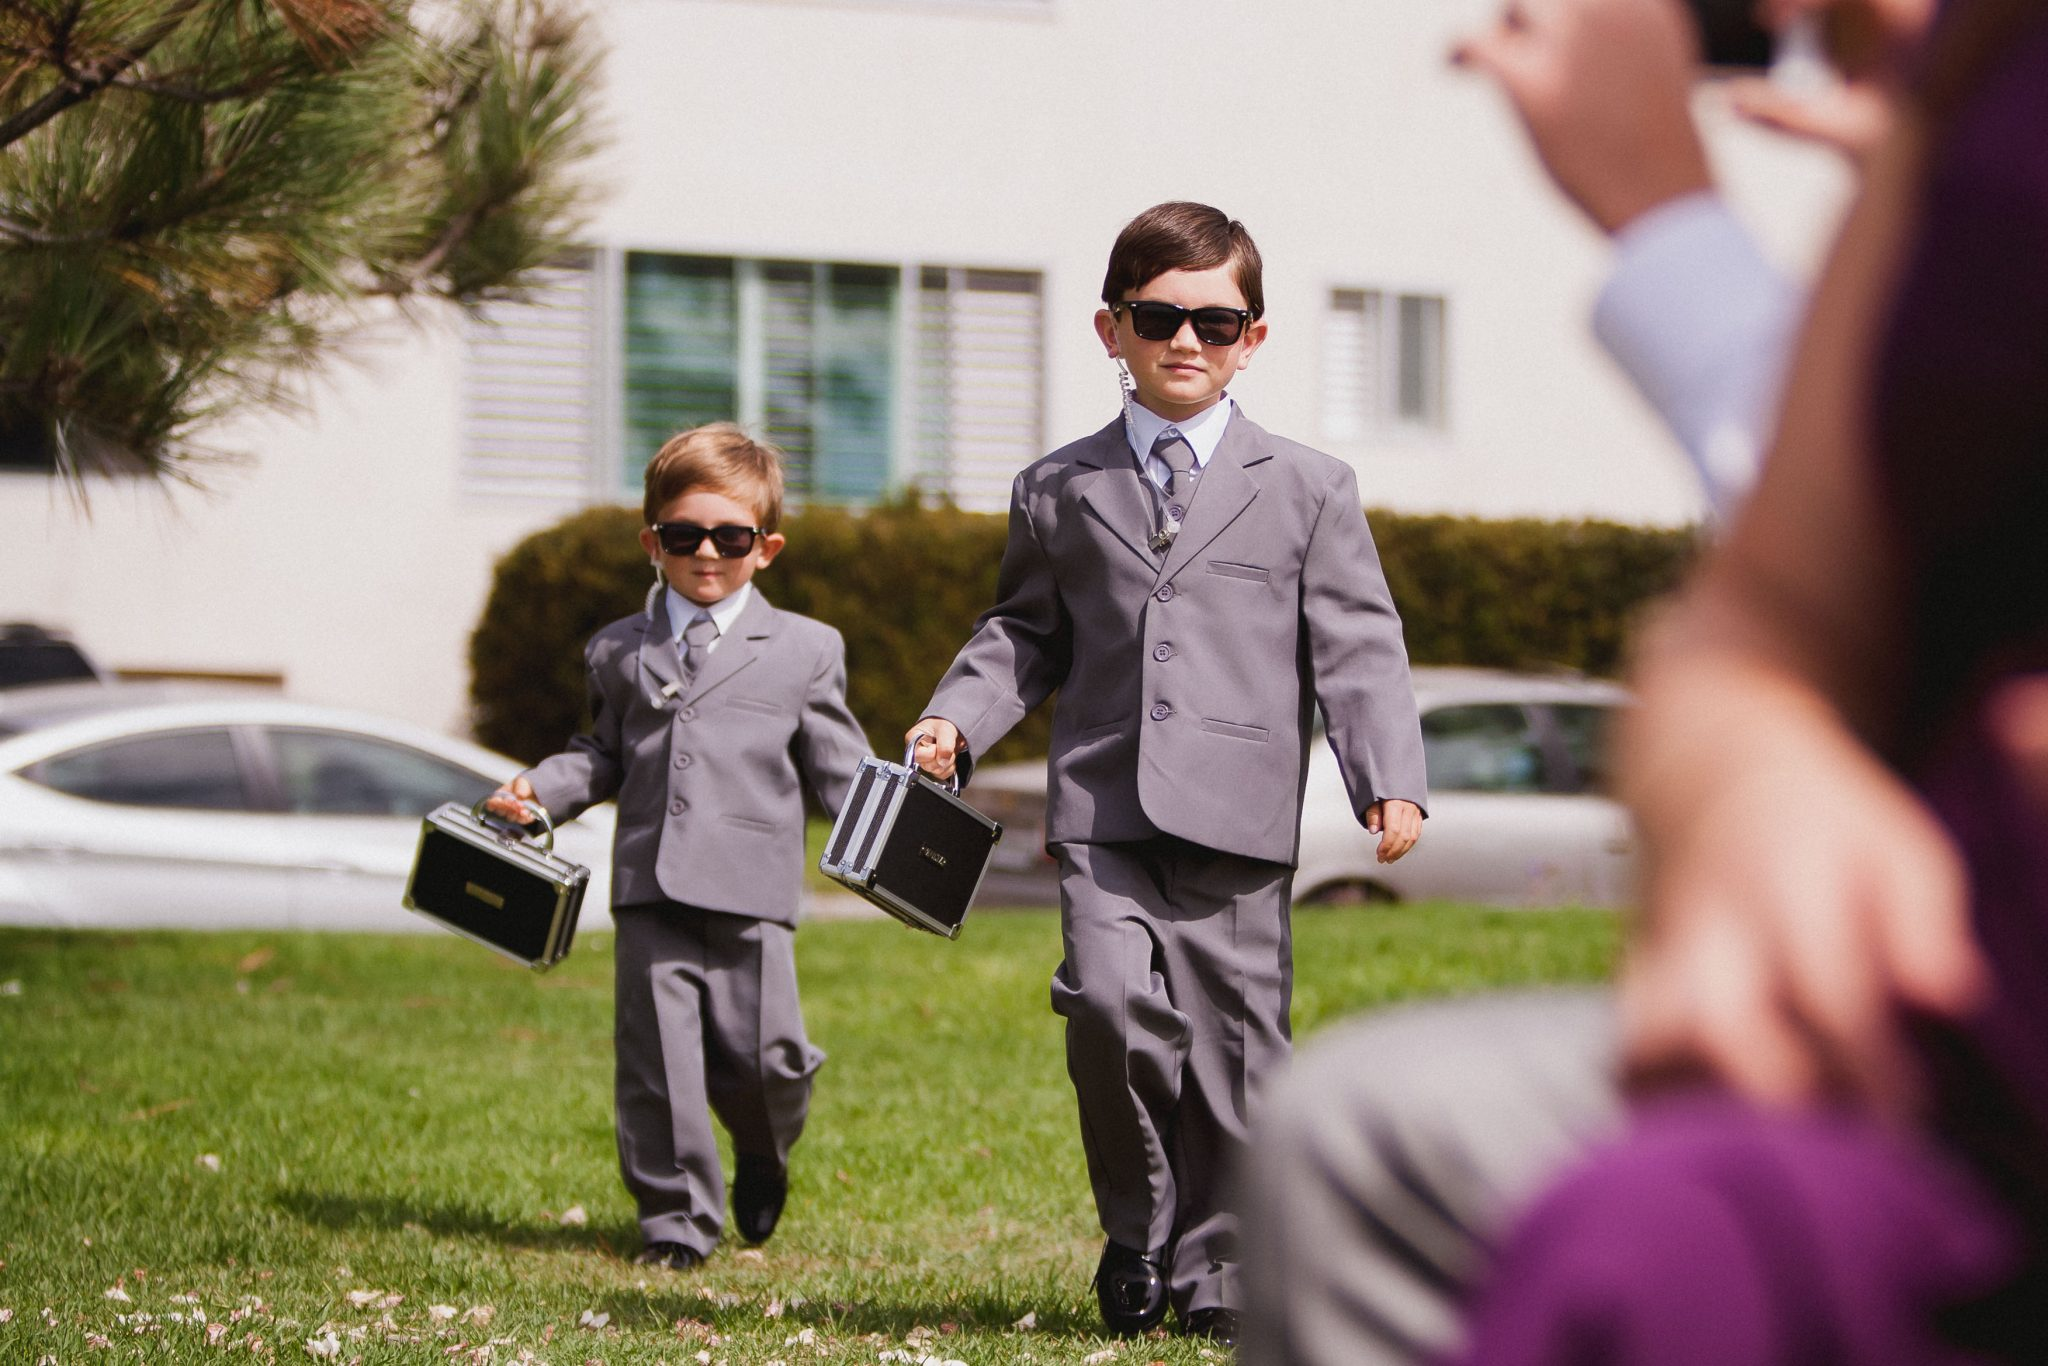 Two ring bearers dressed as security guards with the rings in mini briefcases